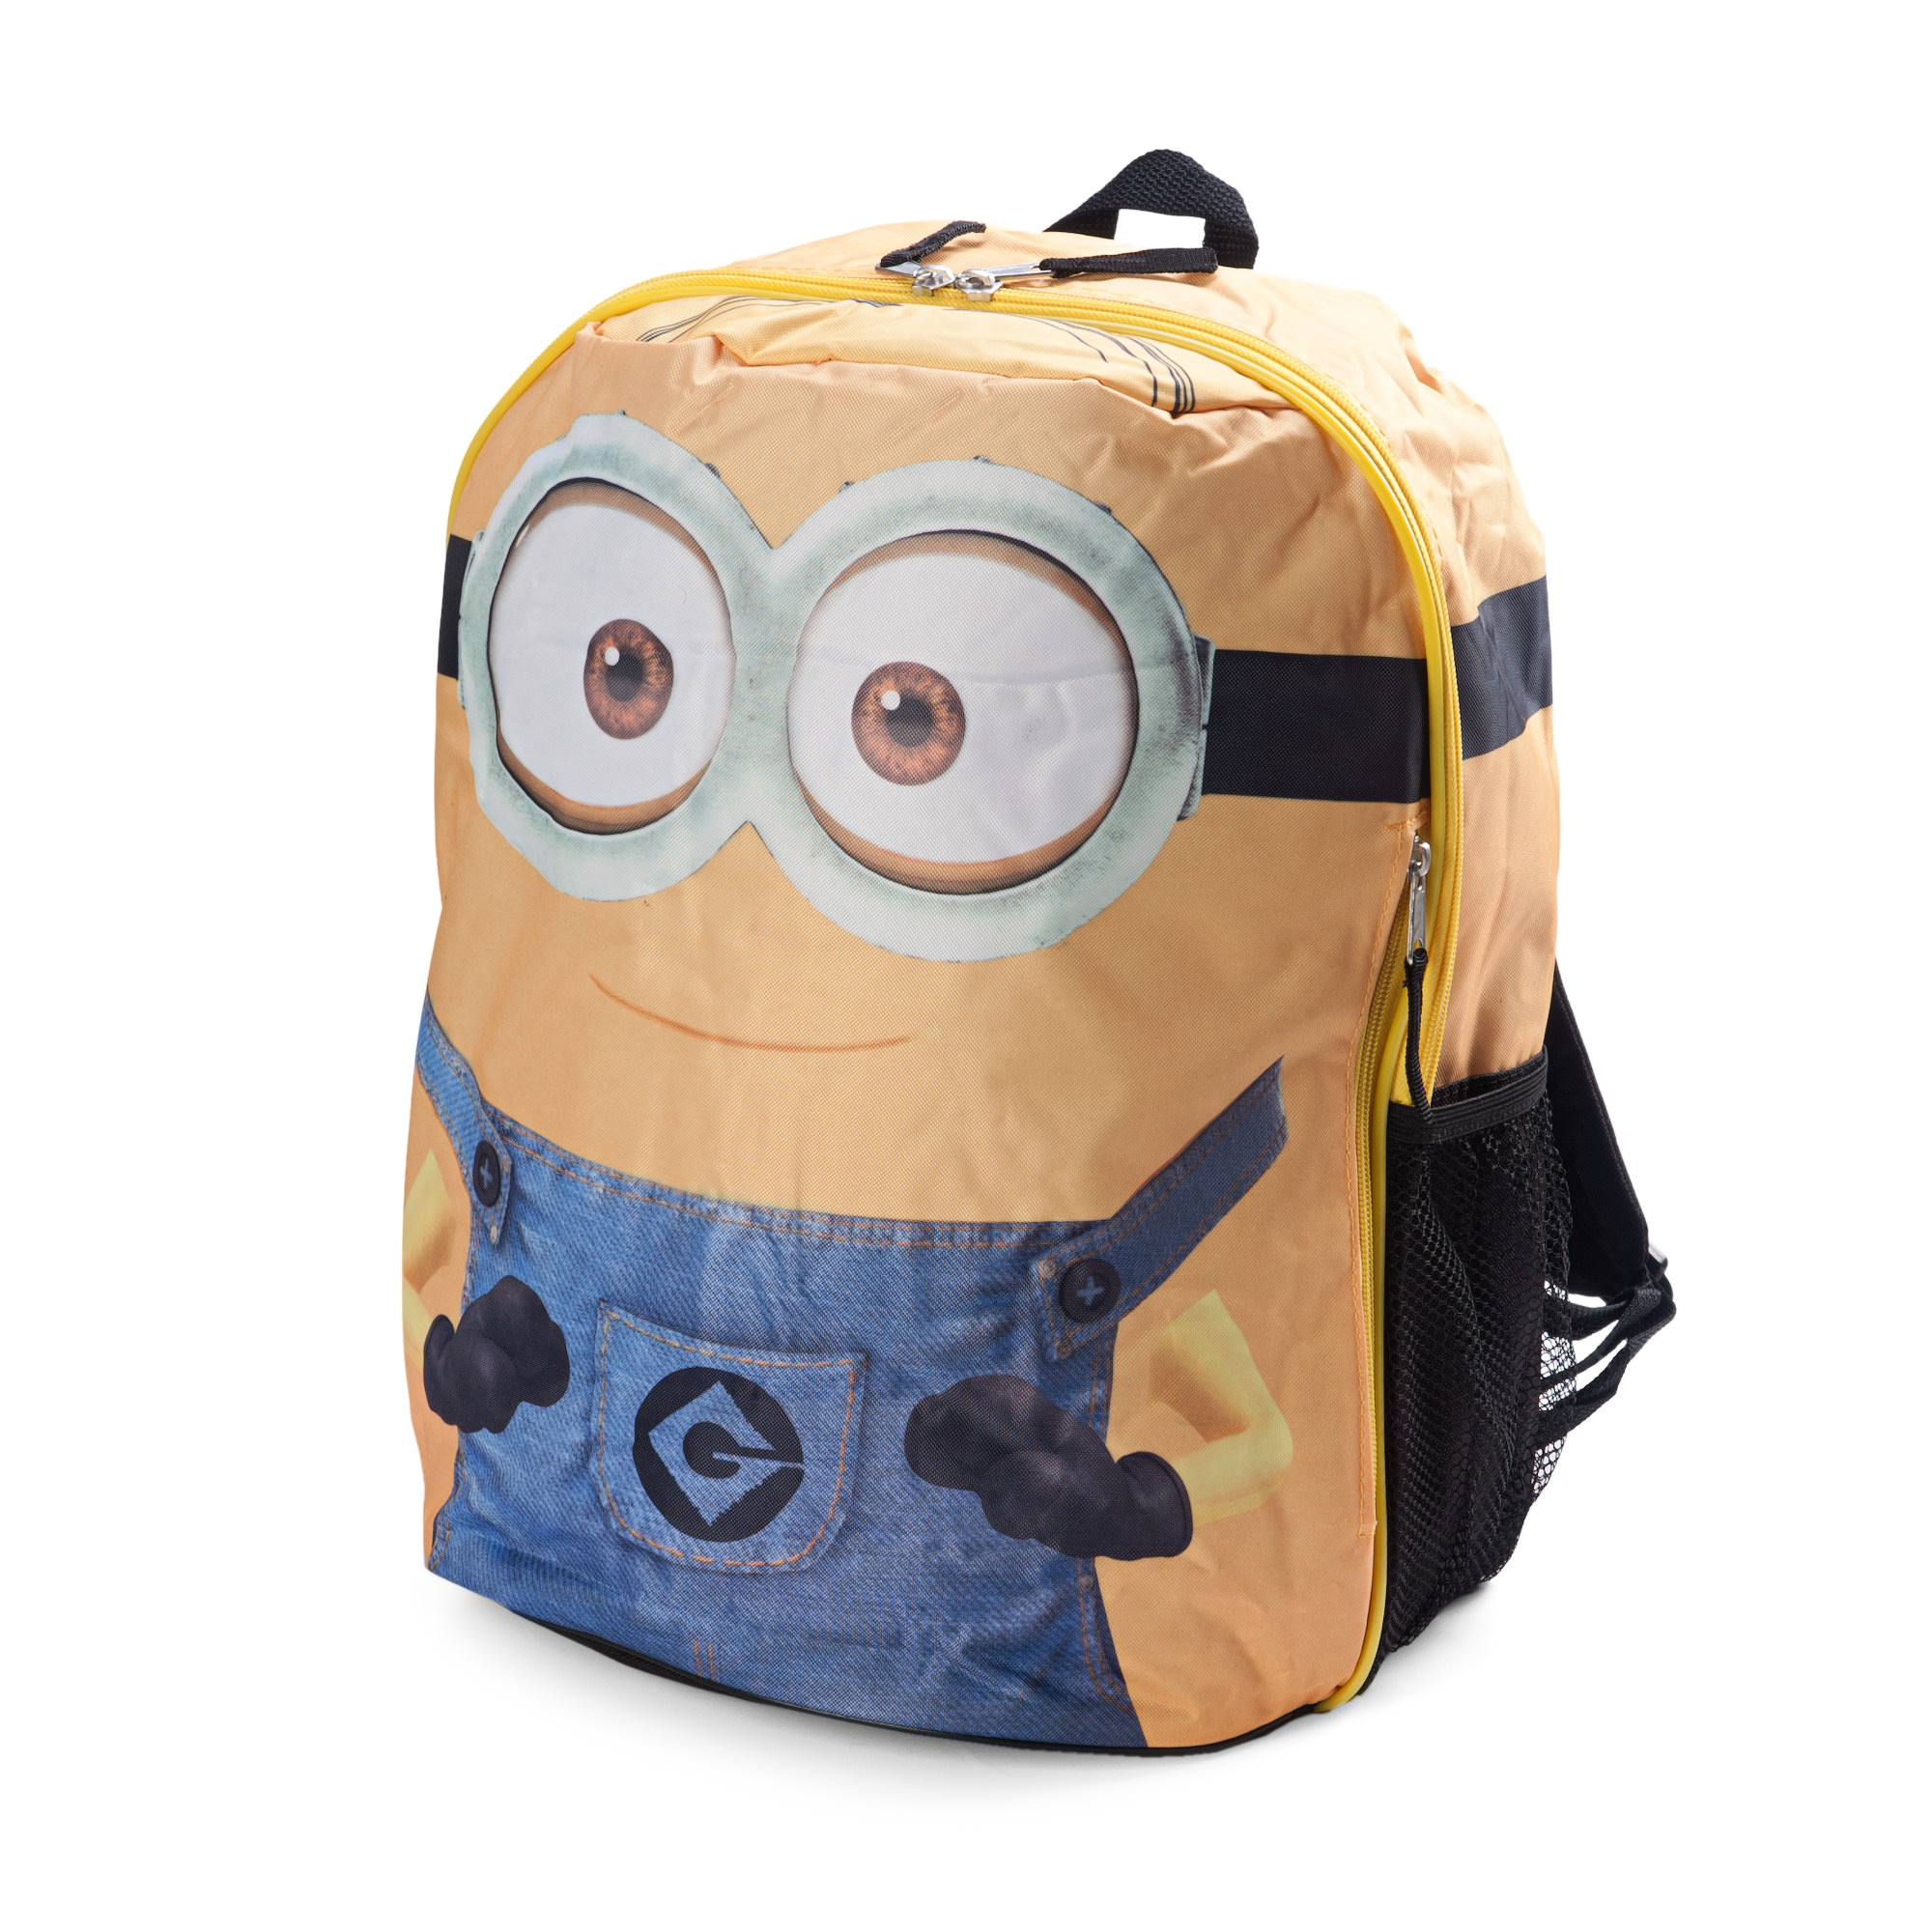 Backpack Minions Large 16 Inch with Large Despicable Sounds